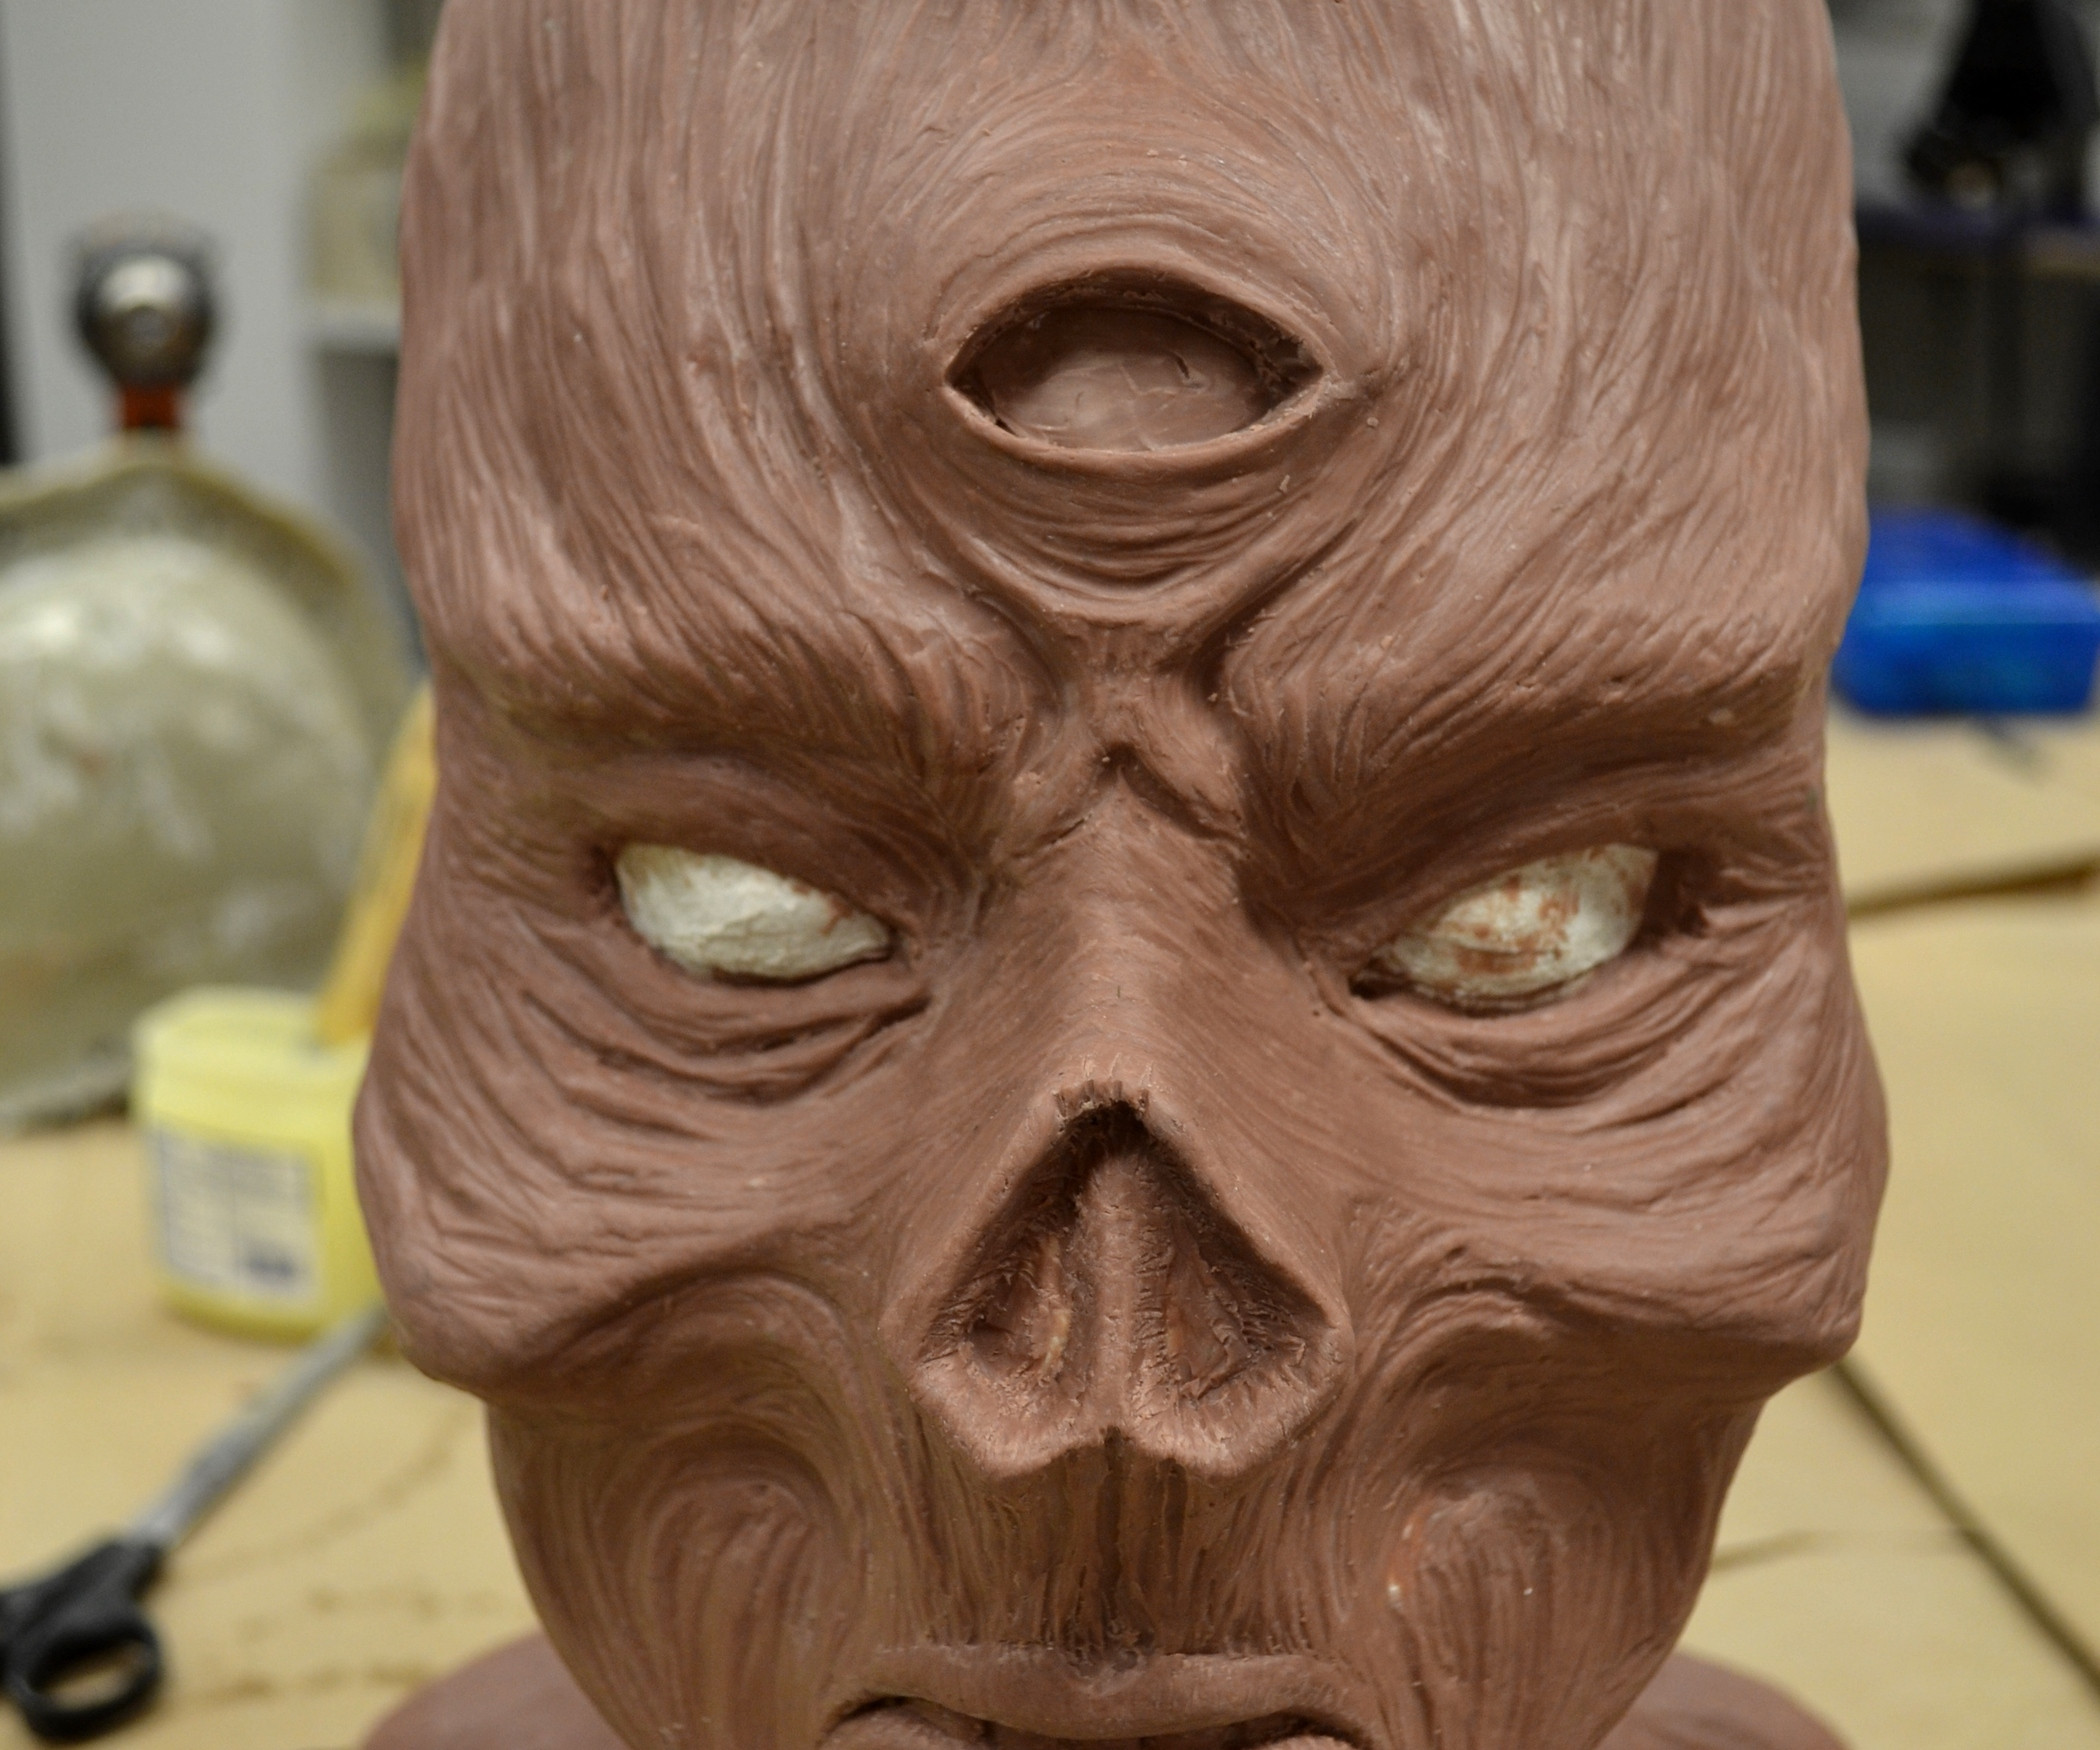 Best ideas about DIY Rubber Mask . Save or Pin Latex Mask All Now.